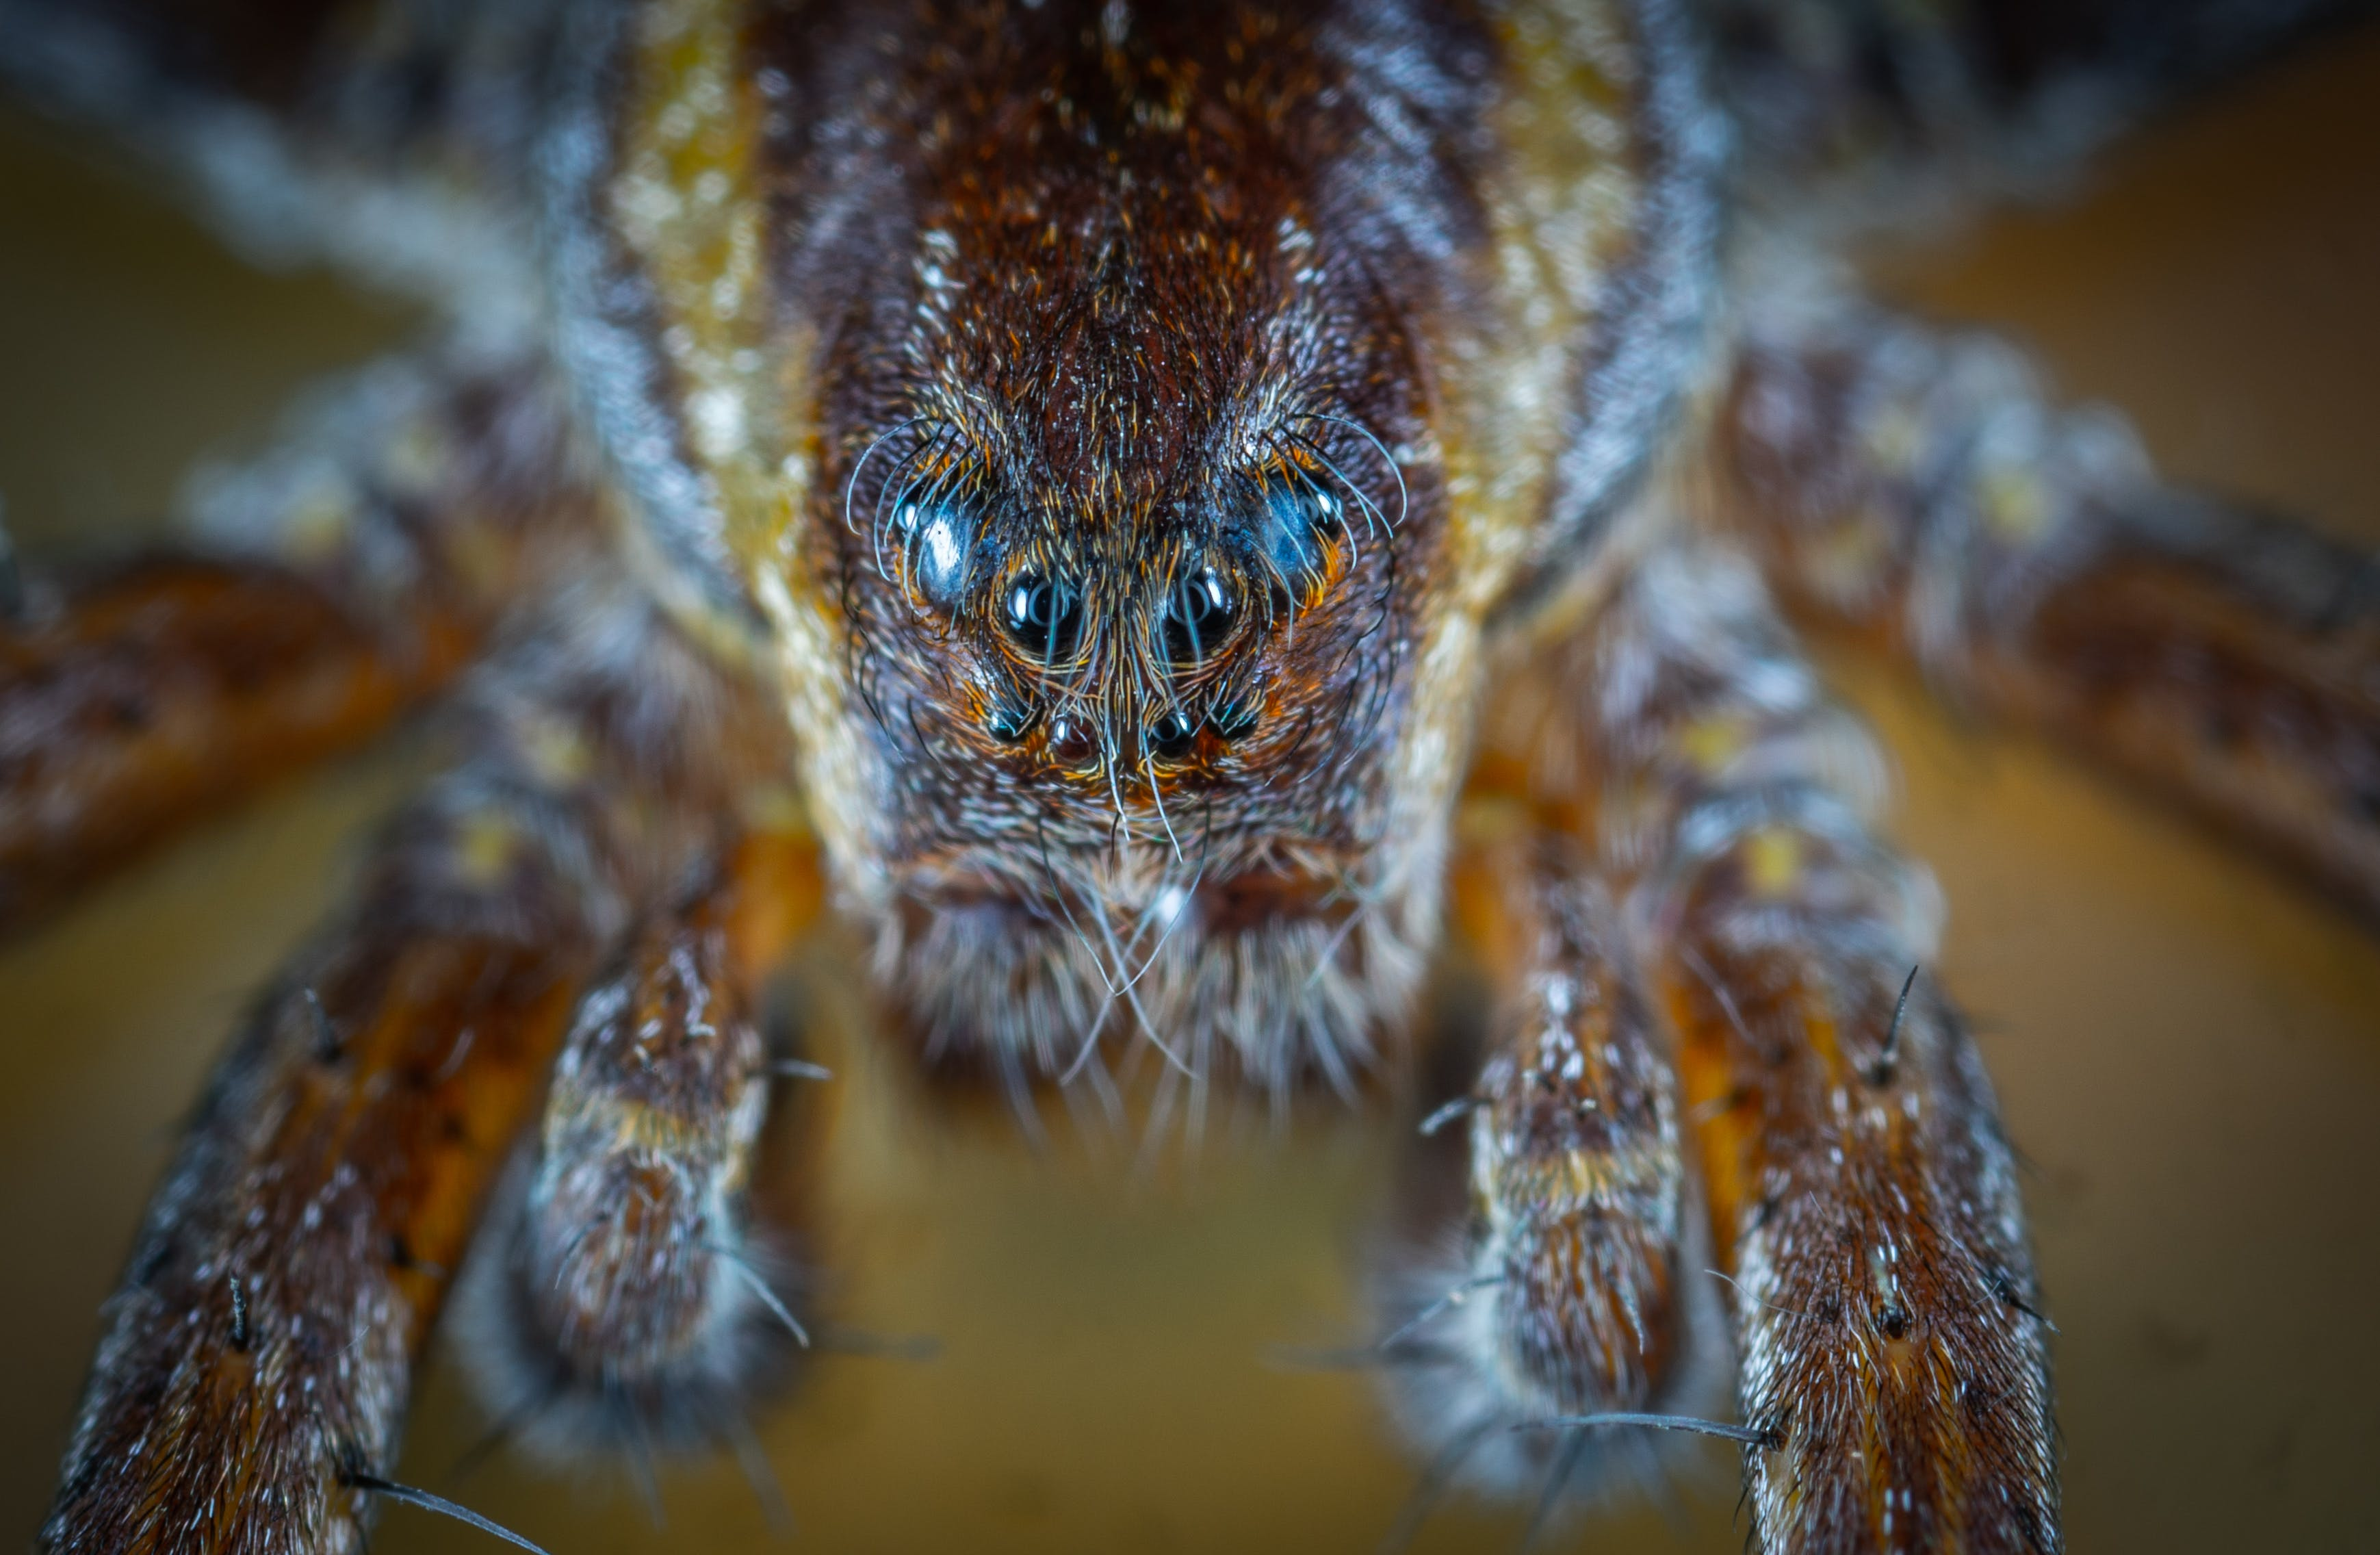 Micro Photo of Brown Jumping Spider